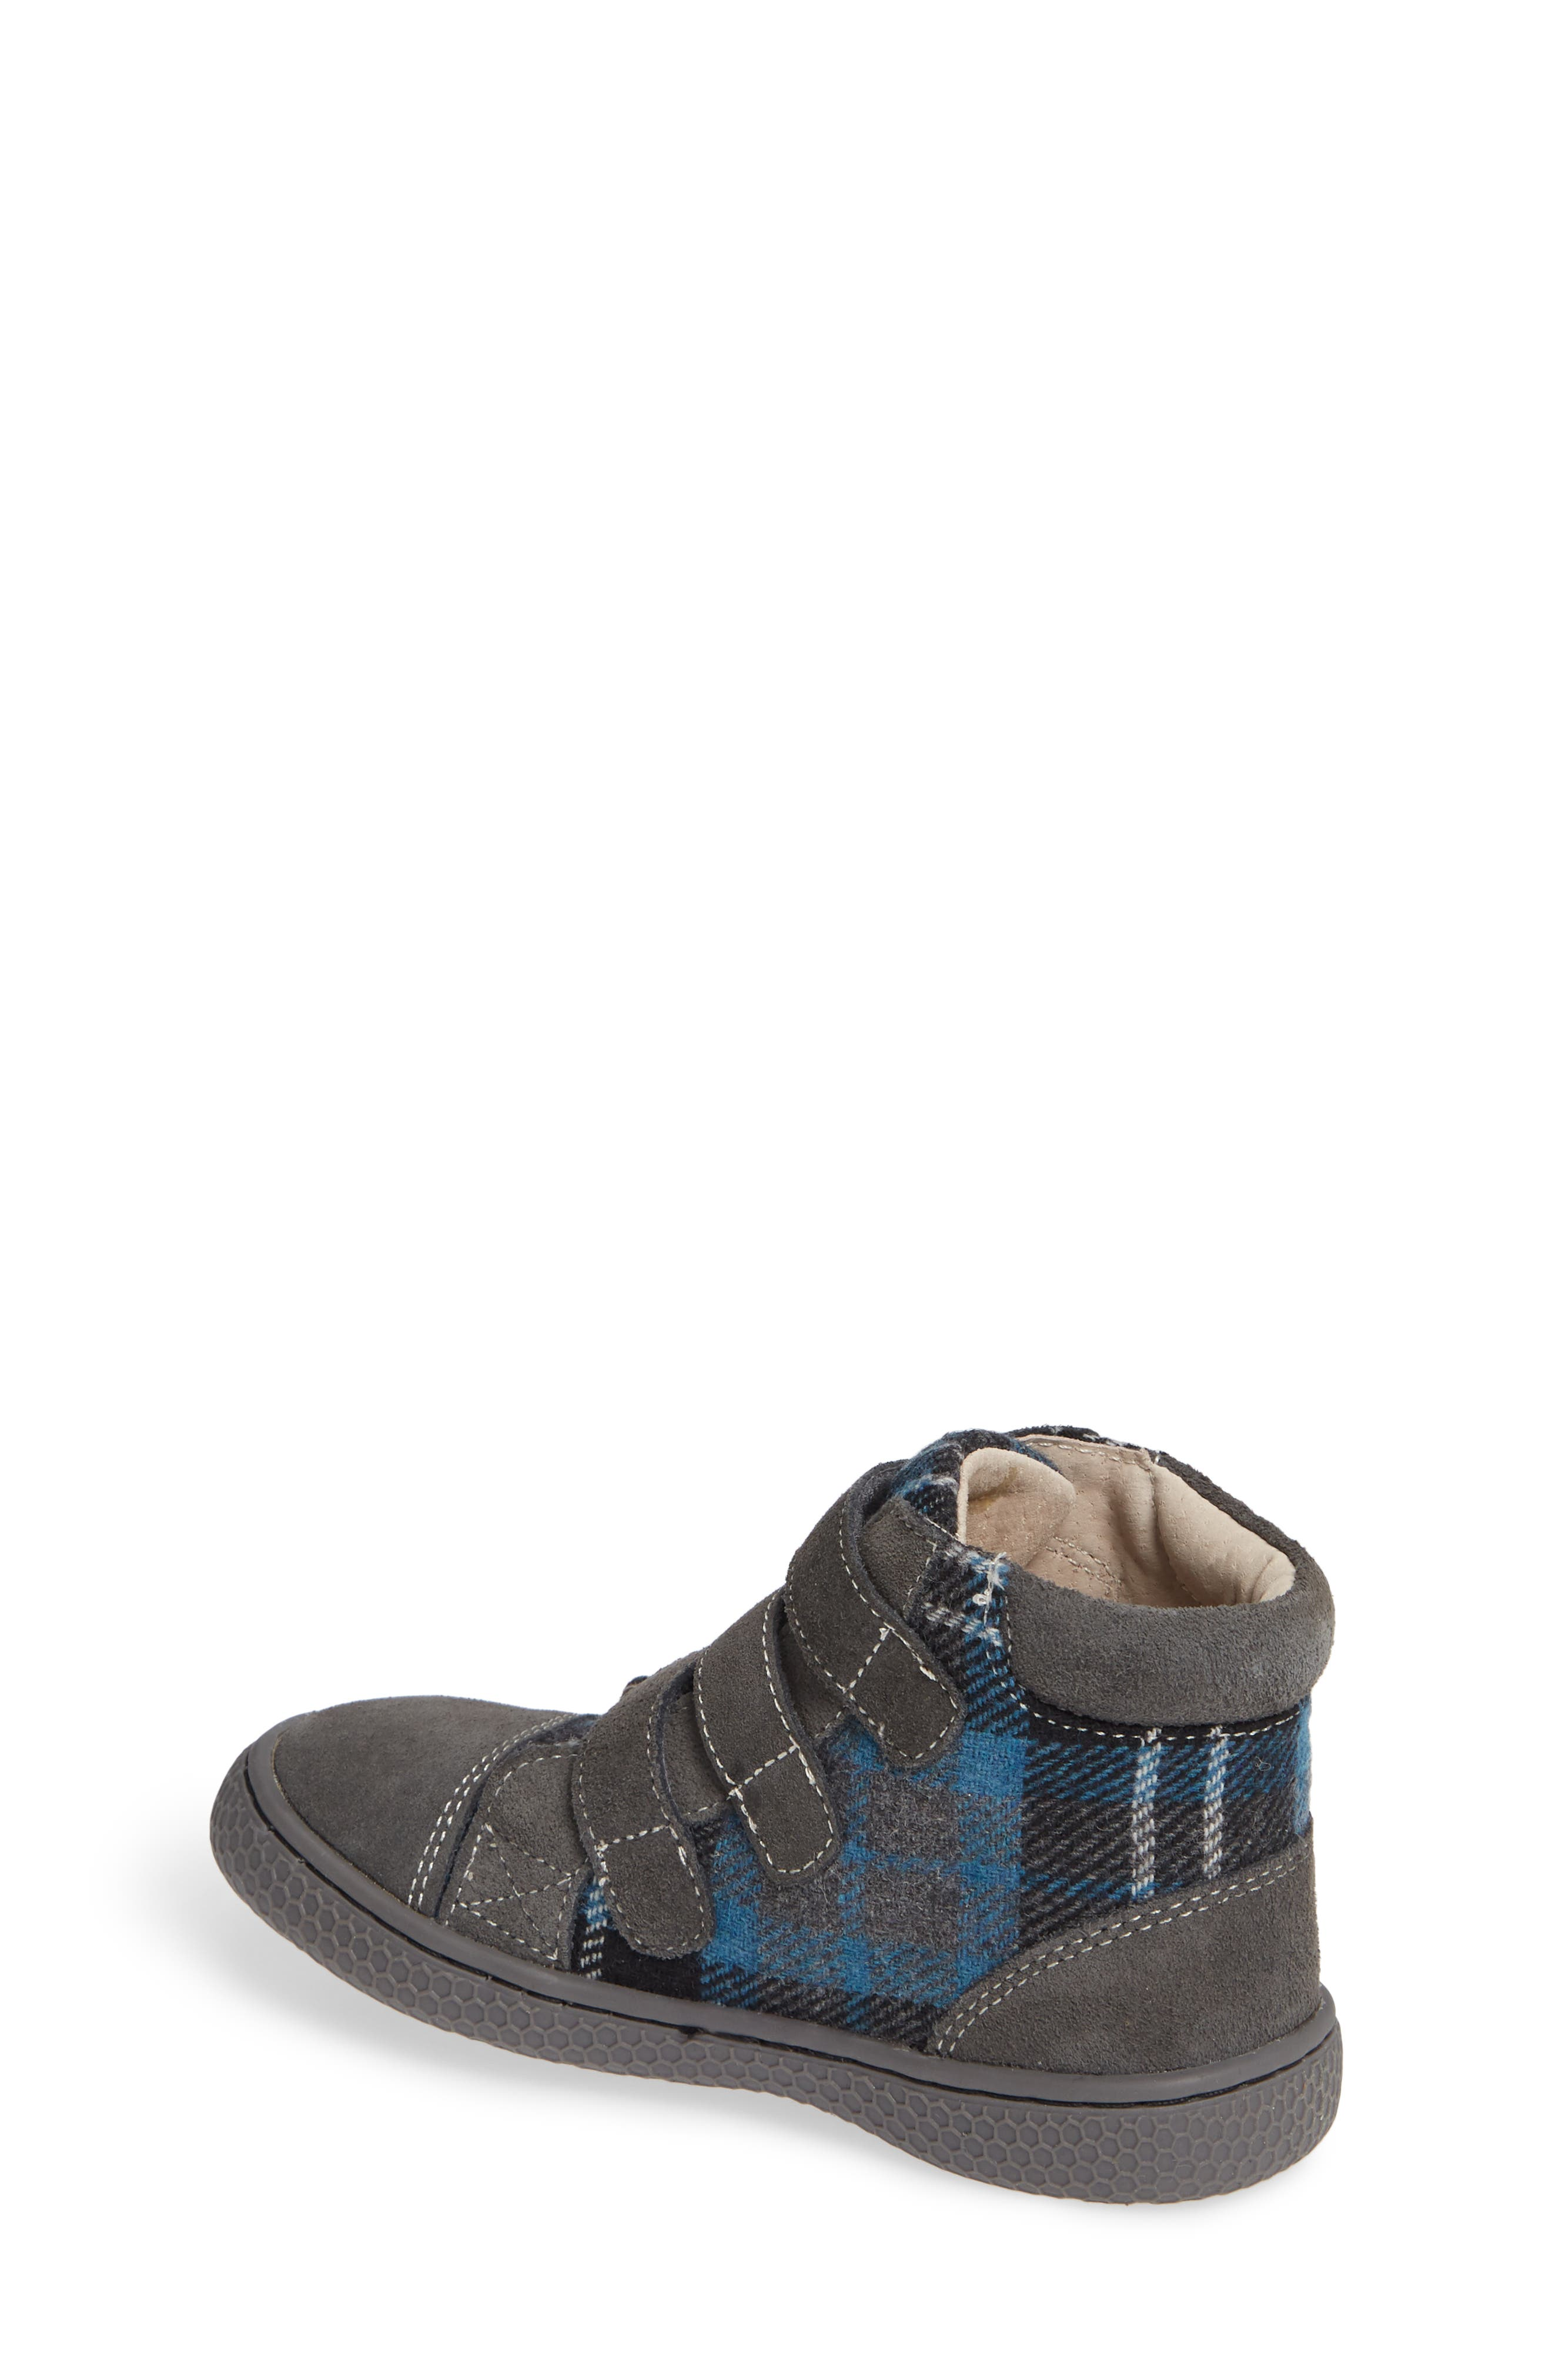 'Jamie' High Top Sneaker,                             Alternate thumbnail 2, color,                             GRAY PLAID